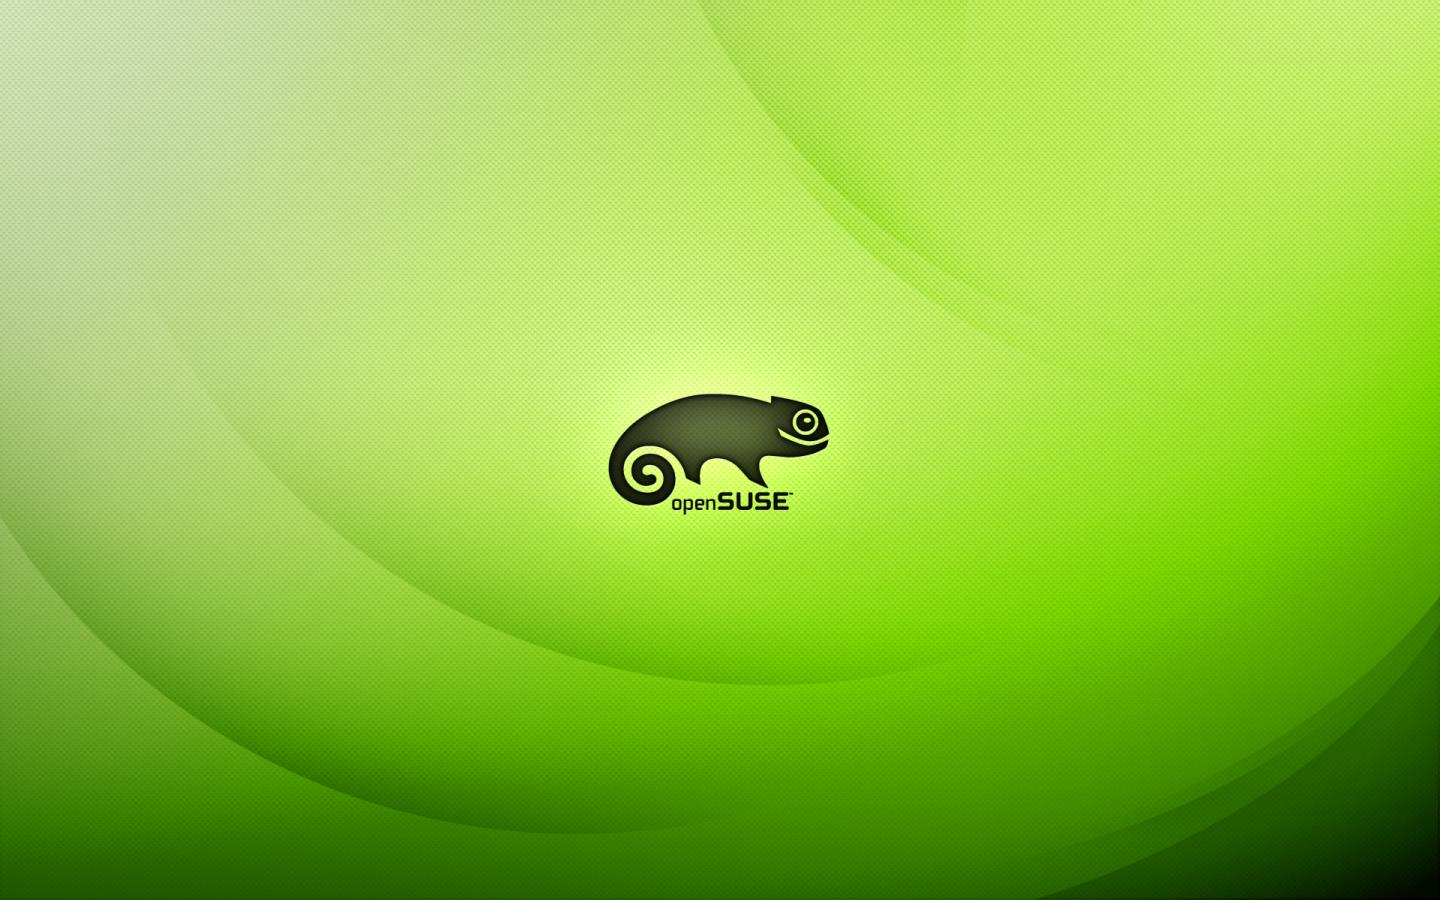 linux backgrounds computers opensuse best widescreen background 1440x900